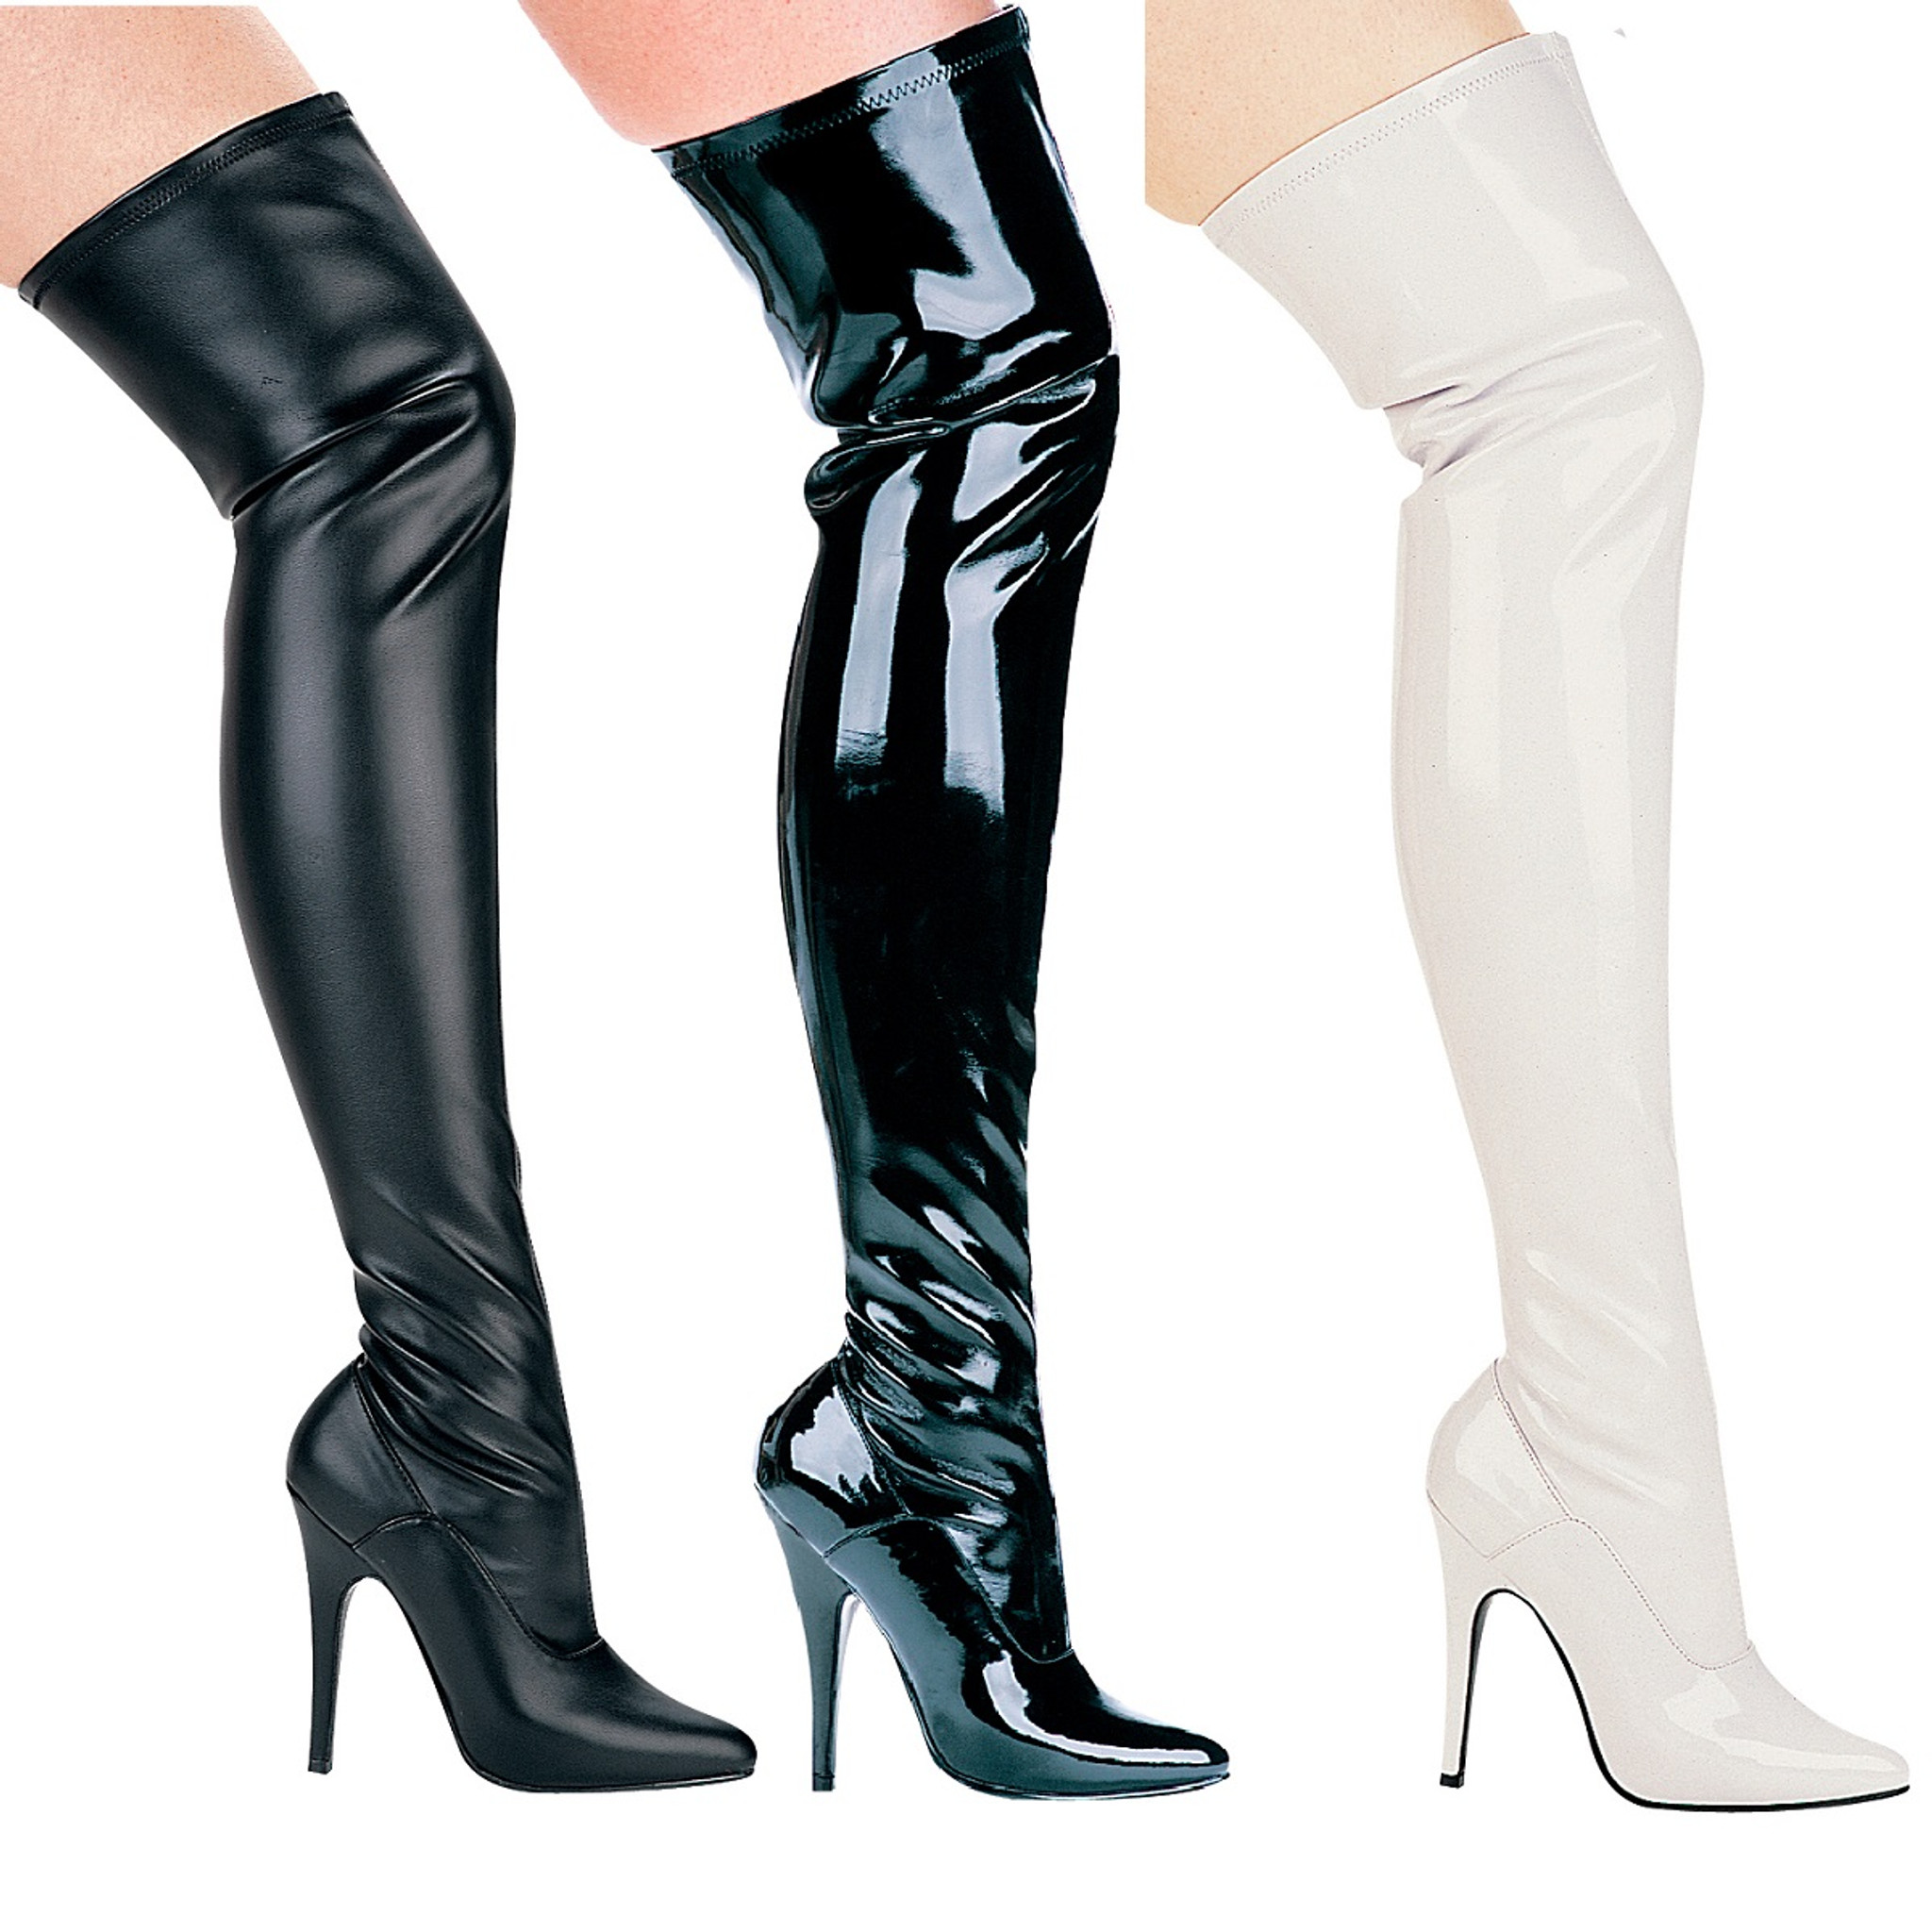 running shoes the latest new lifestyle Thigh High Stiletto Boots - Perennial Passions DBA Starlite Apparel